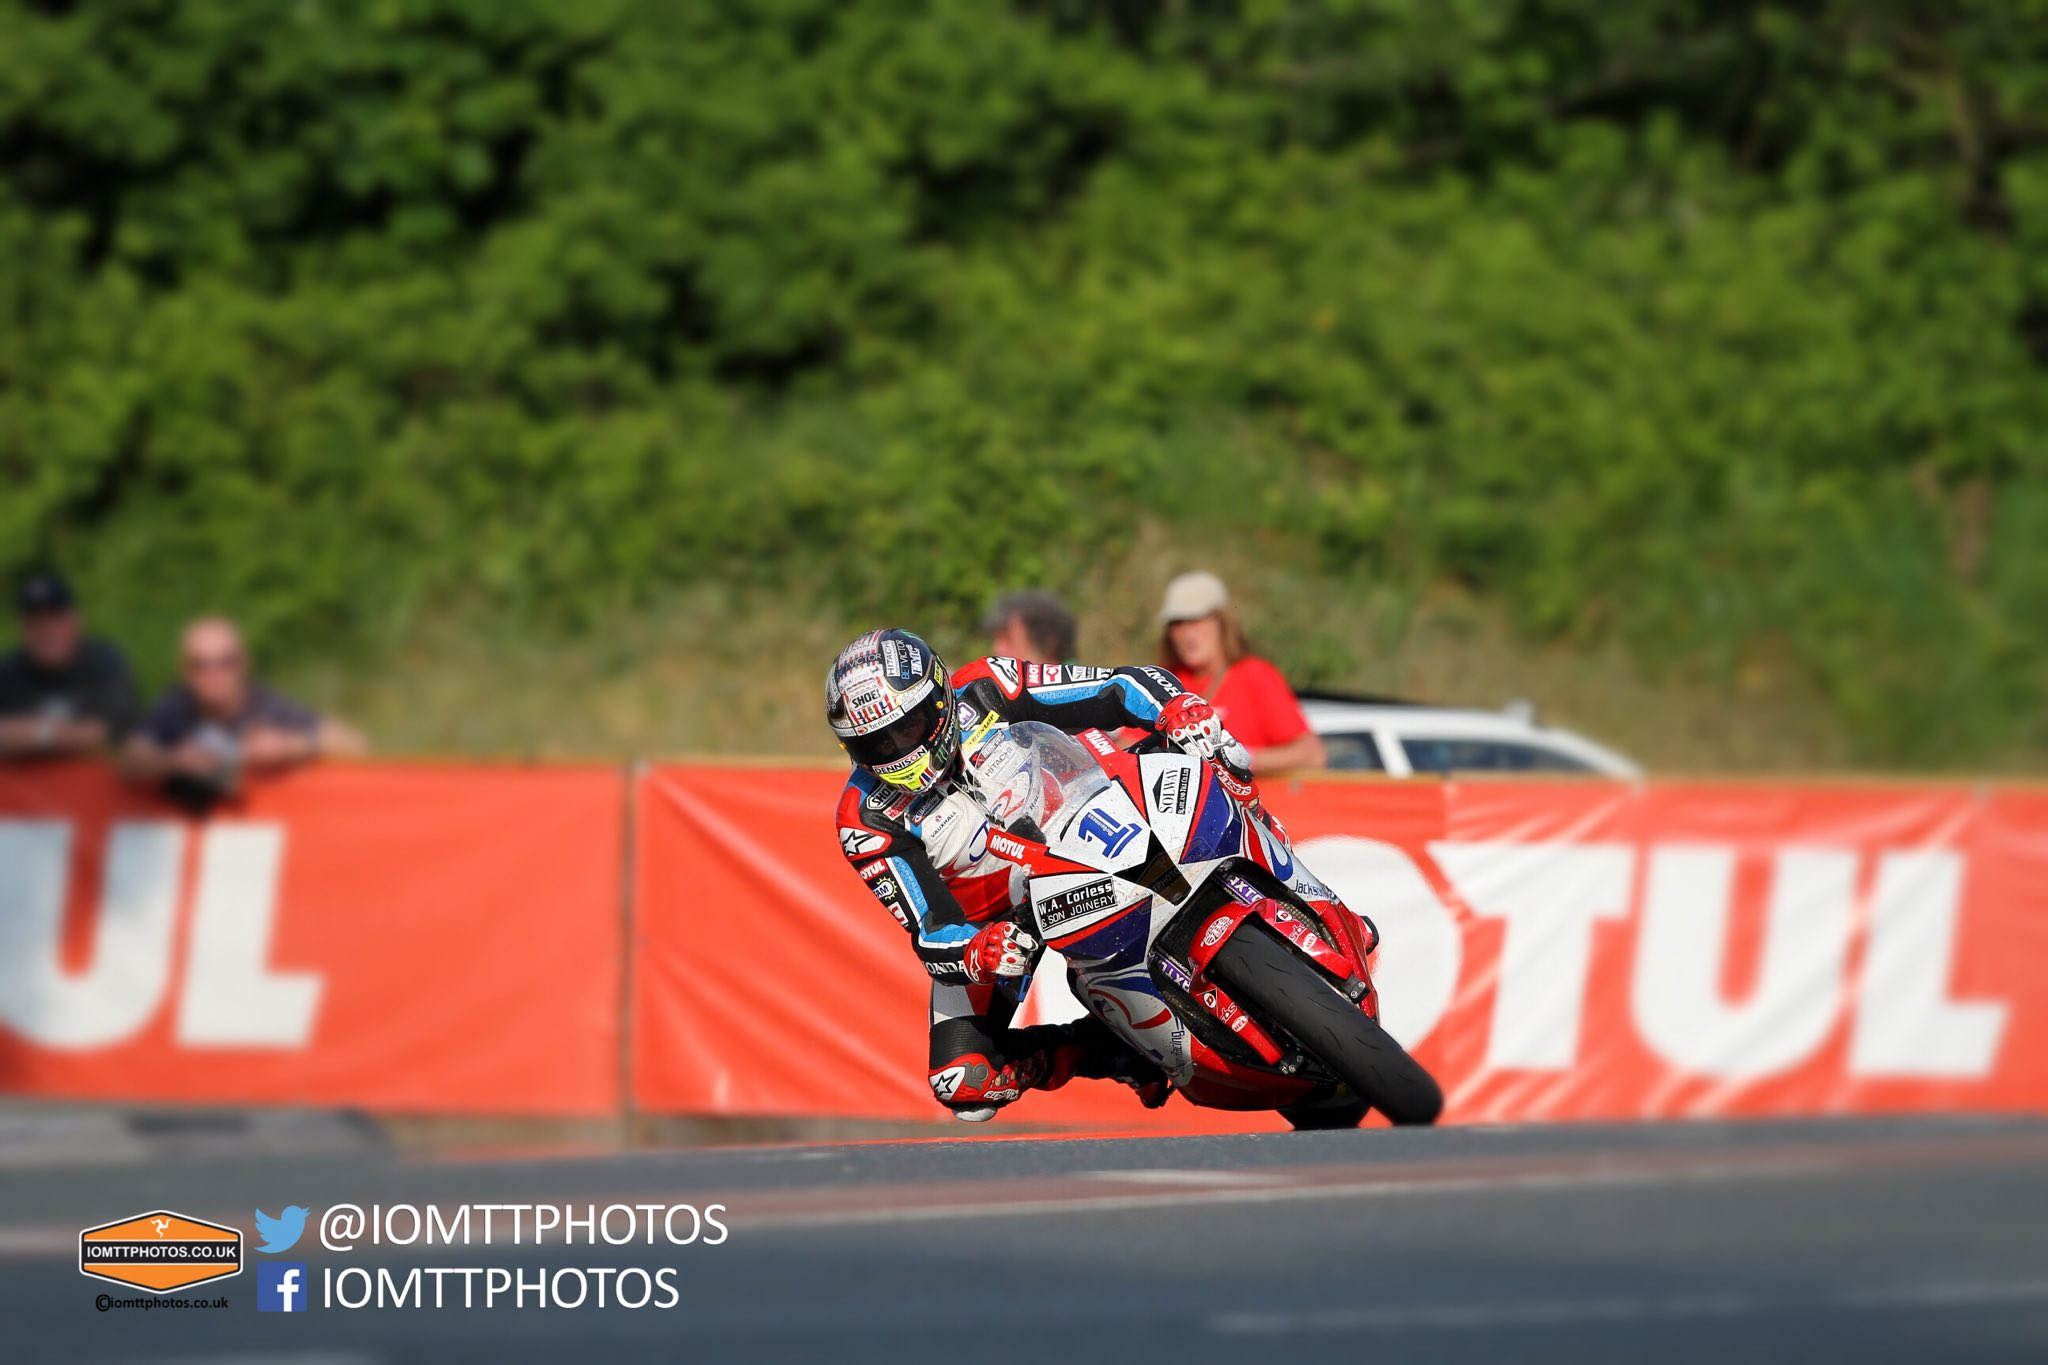 [Road Racing] TT 2016 - Page 4 Cjnbt37VEAA8thM